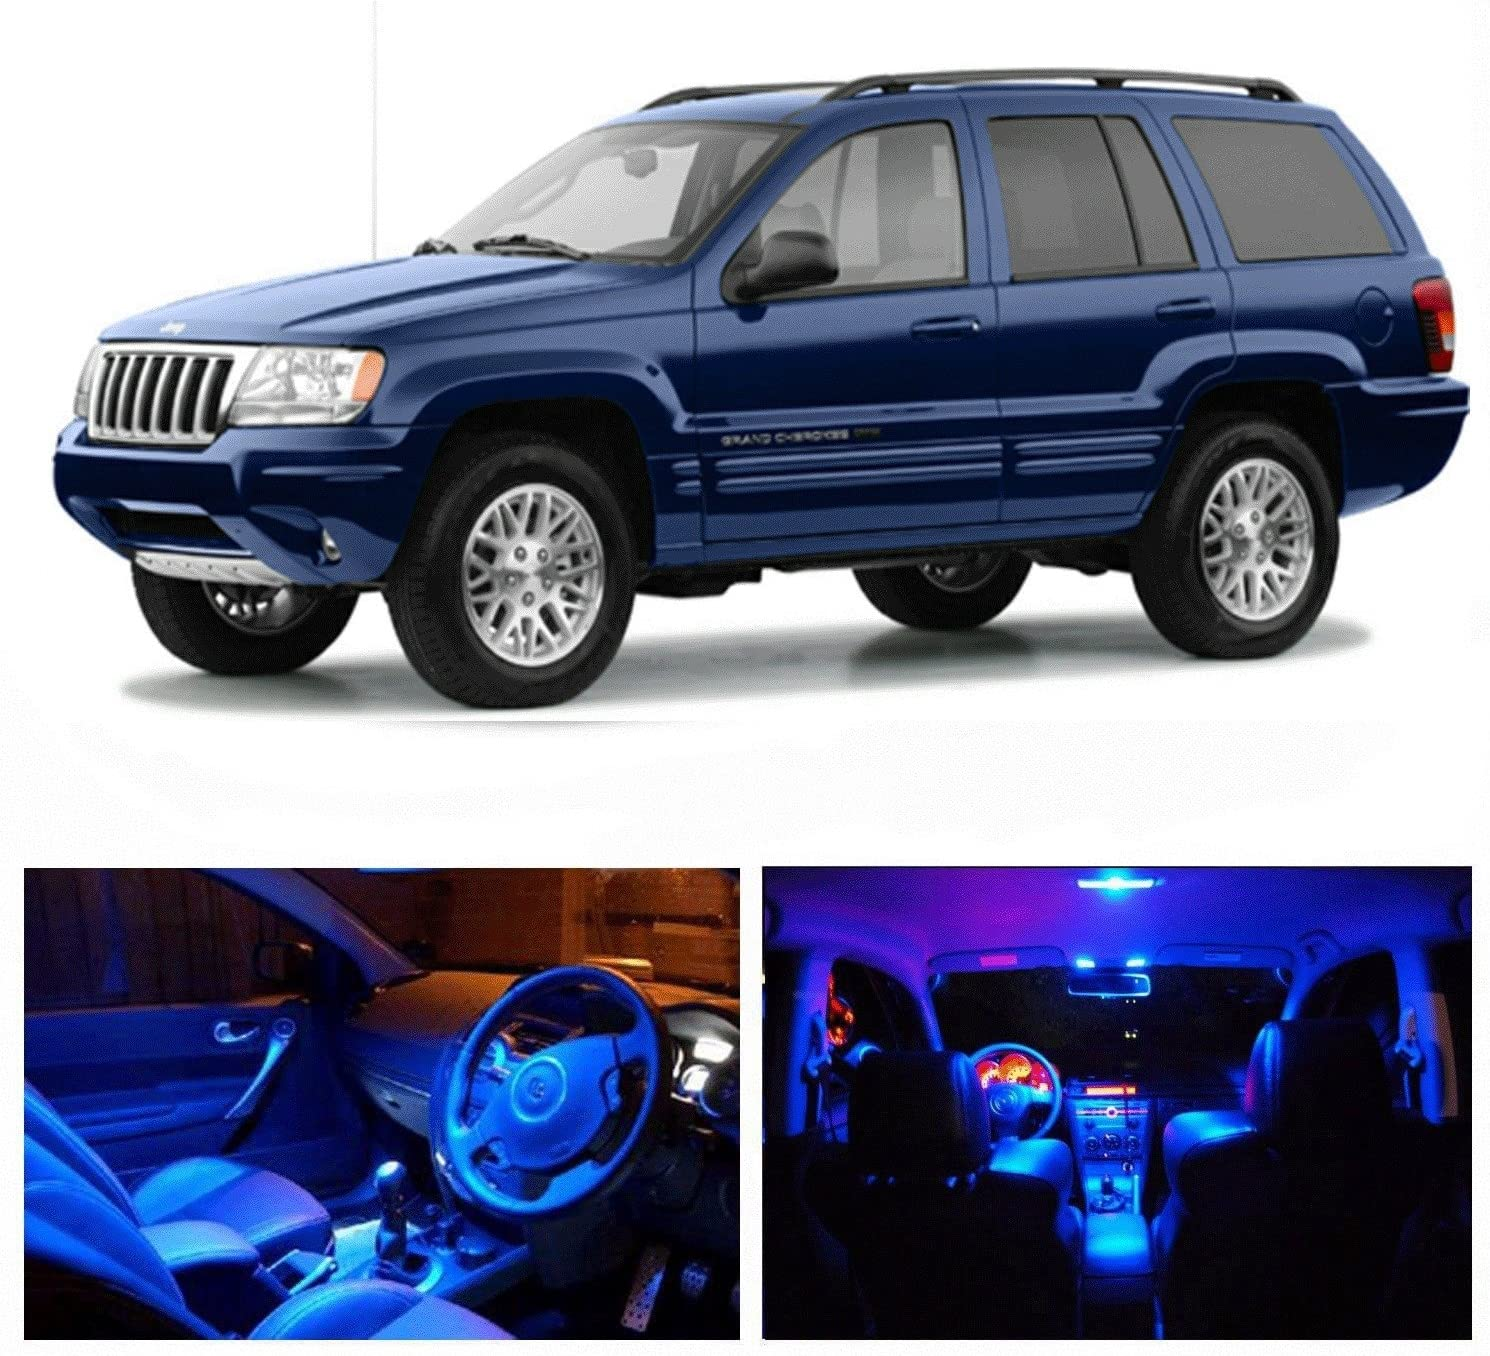 amazon com led blue lights interior package kit for jeep grand cherokee 1999 2004 13 pcs automotive led blue lights interior package kit for jeep grand cherokee 1999 2004 13 pcs